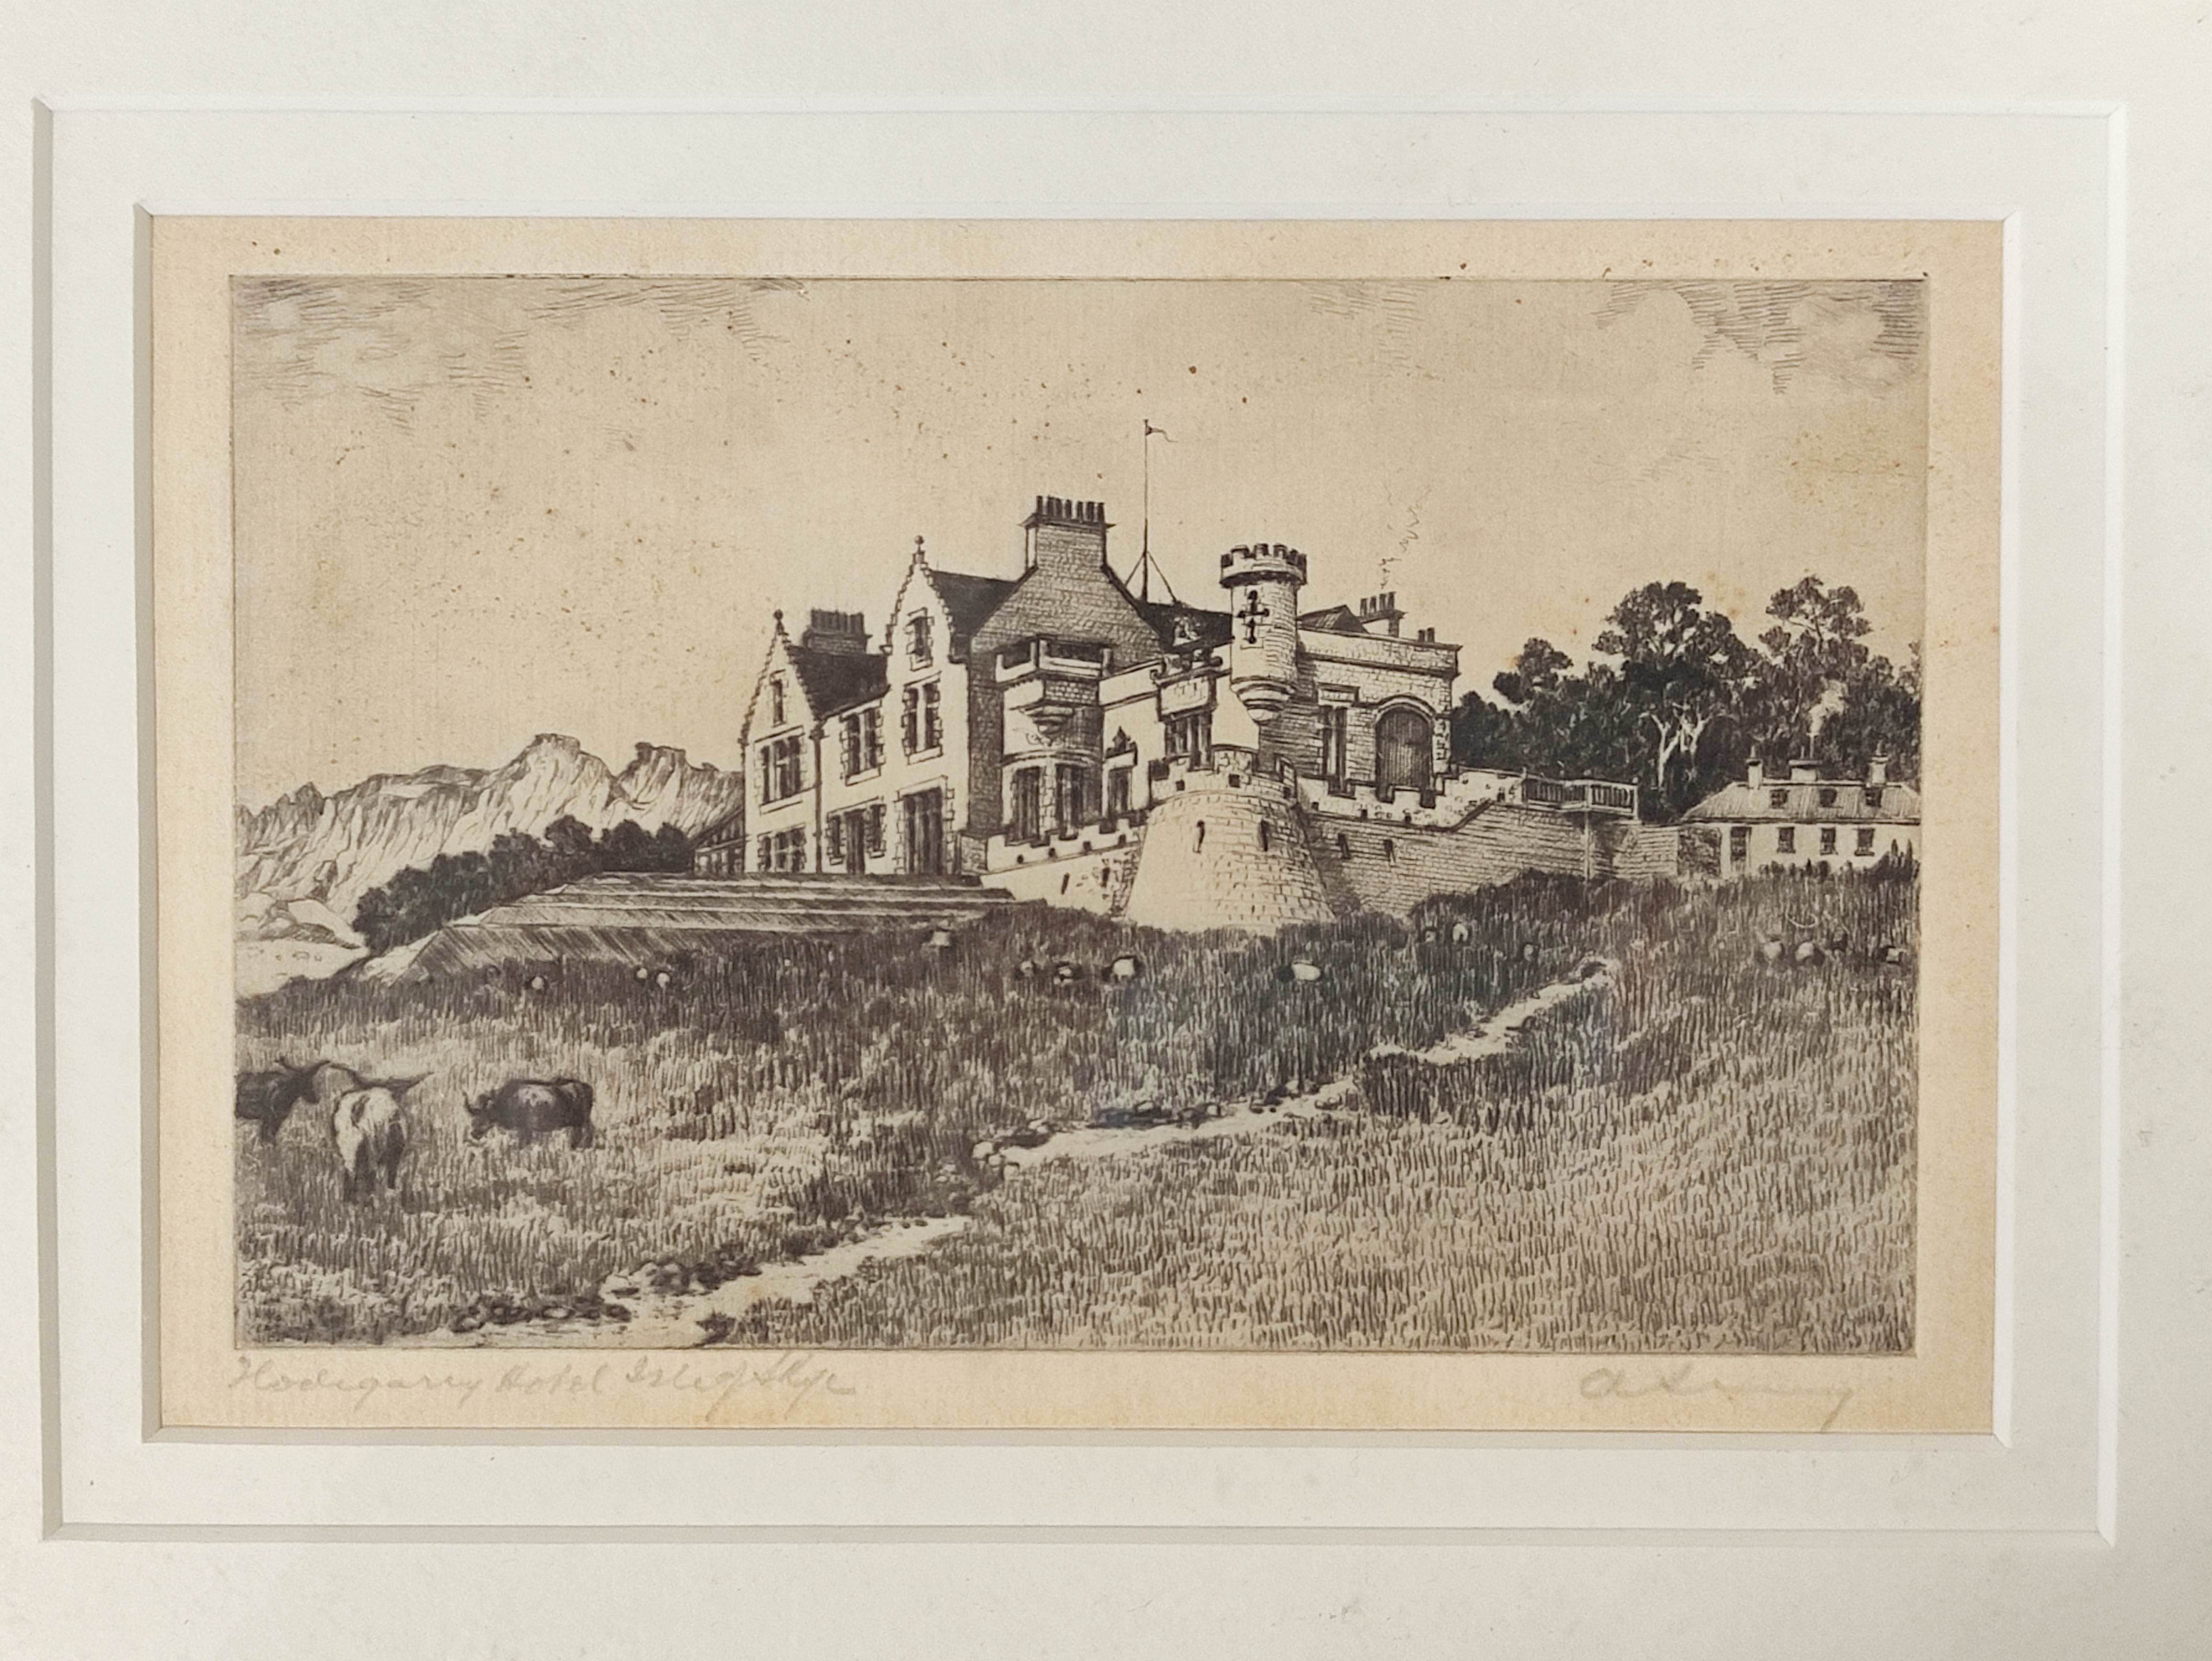 JEAN THOMAS.Bhasteir Tooth, pencil signed etching 2/60; also 5 other engravings & etchings. (6). - Image 5 of 5